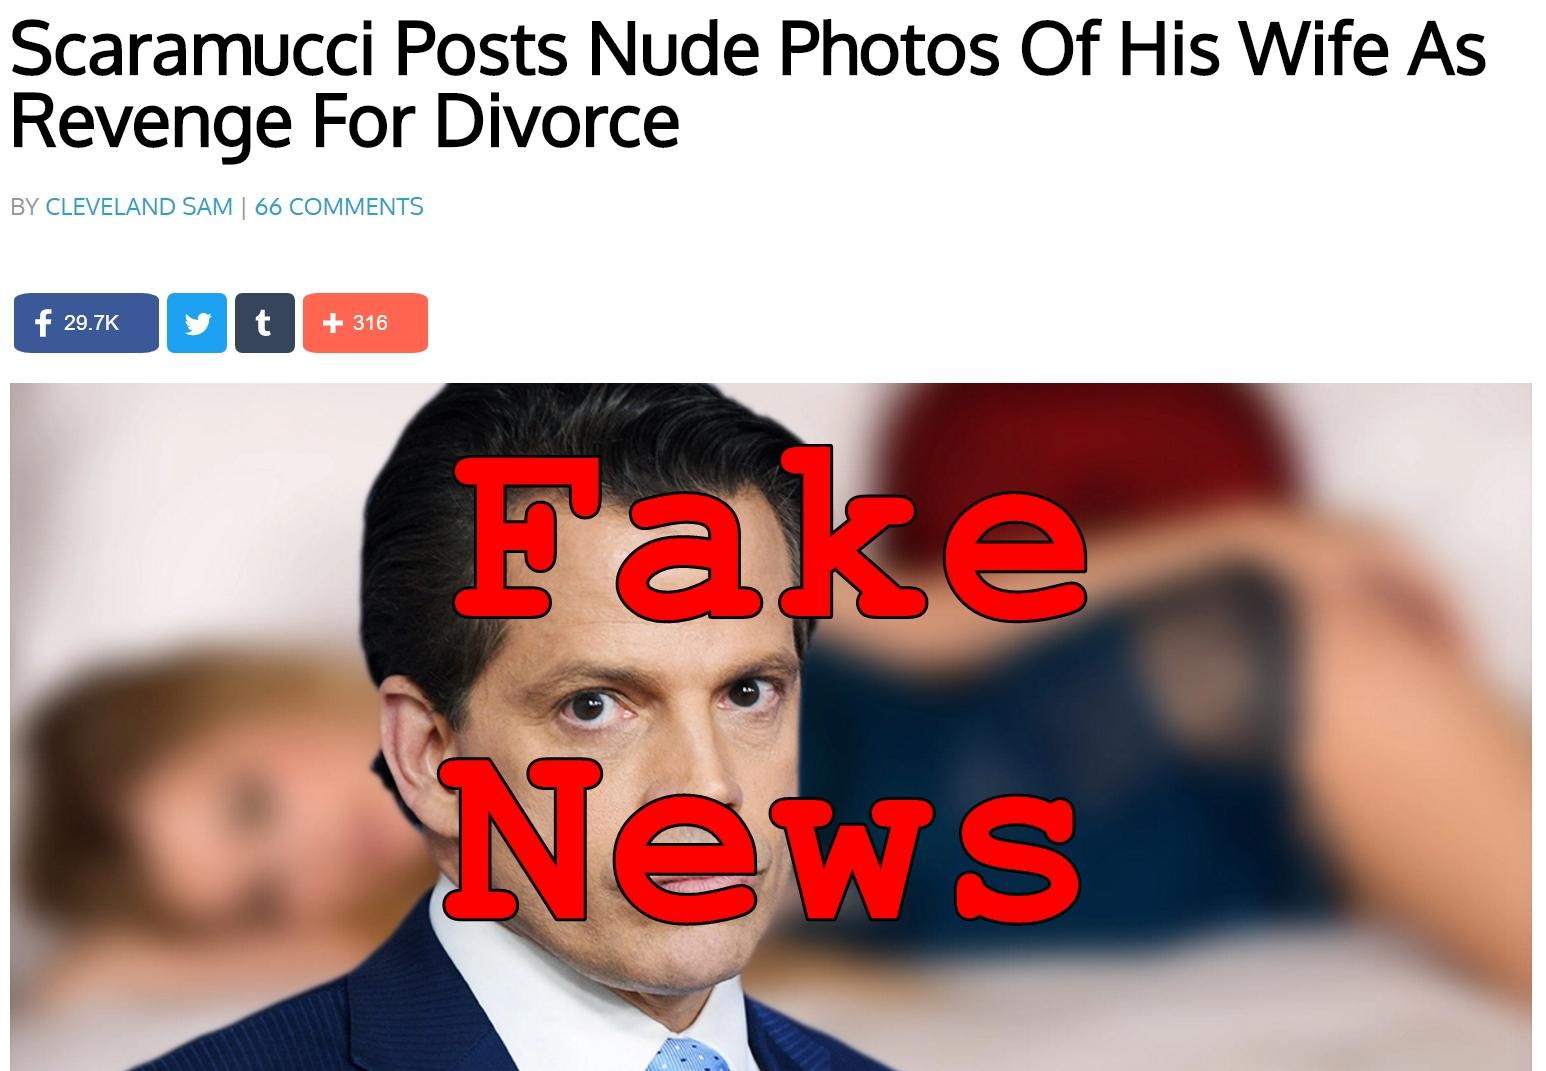 Fake News: Scaramucci Did NOT Post Nude Photos Of His Wife As Revenge For Divorce